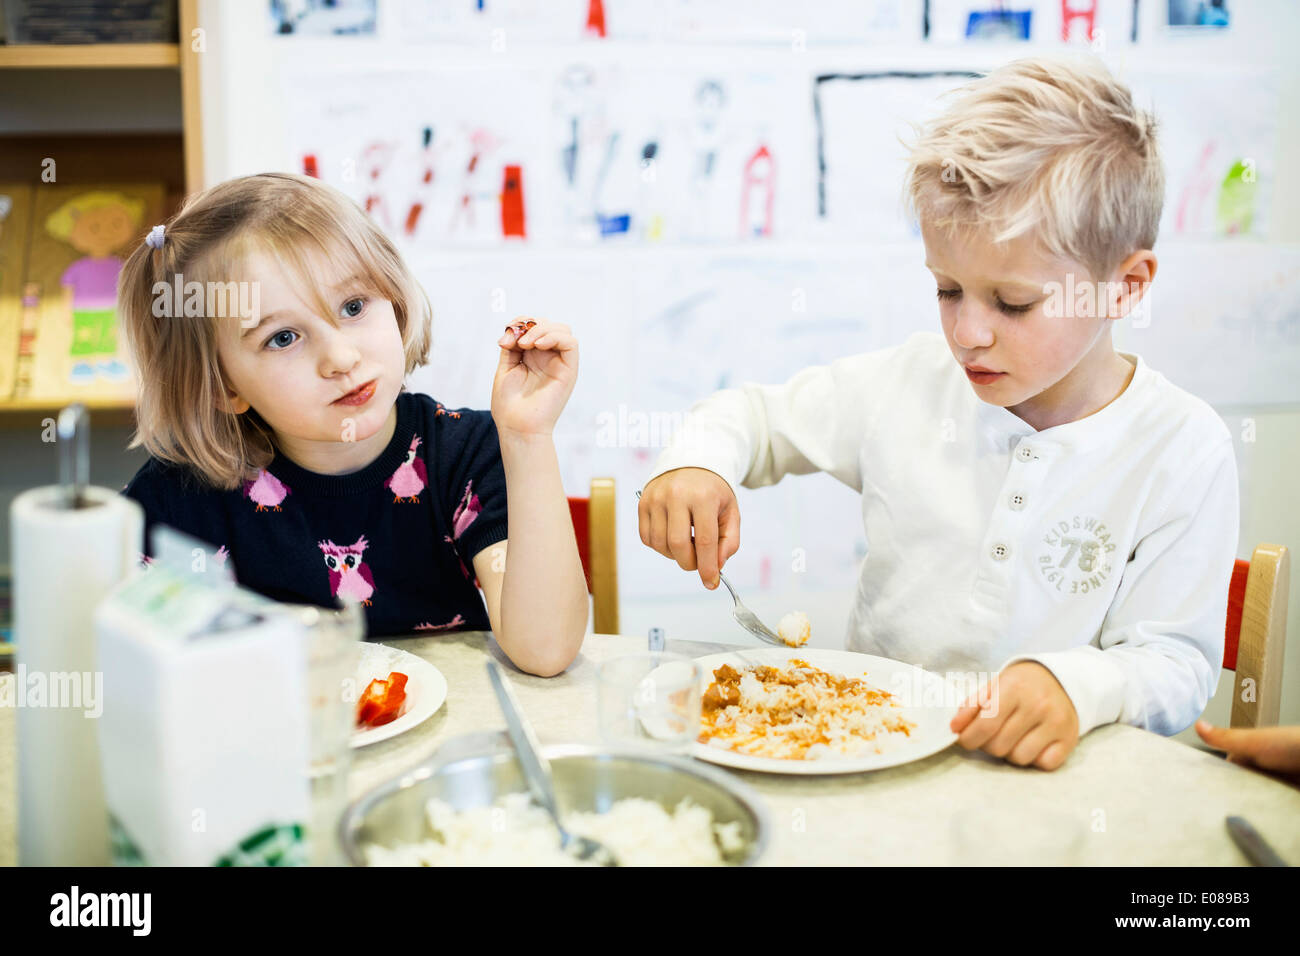 Elementary students having food in kindergarten - Stock Image